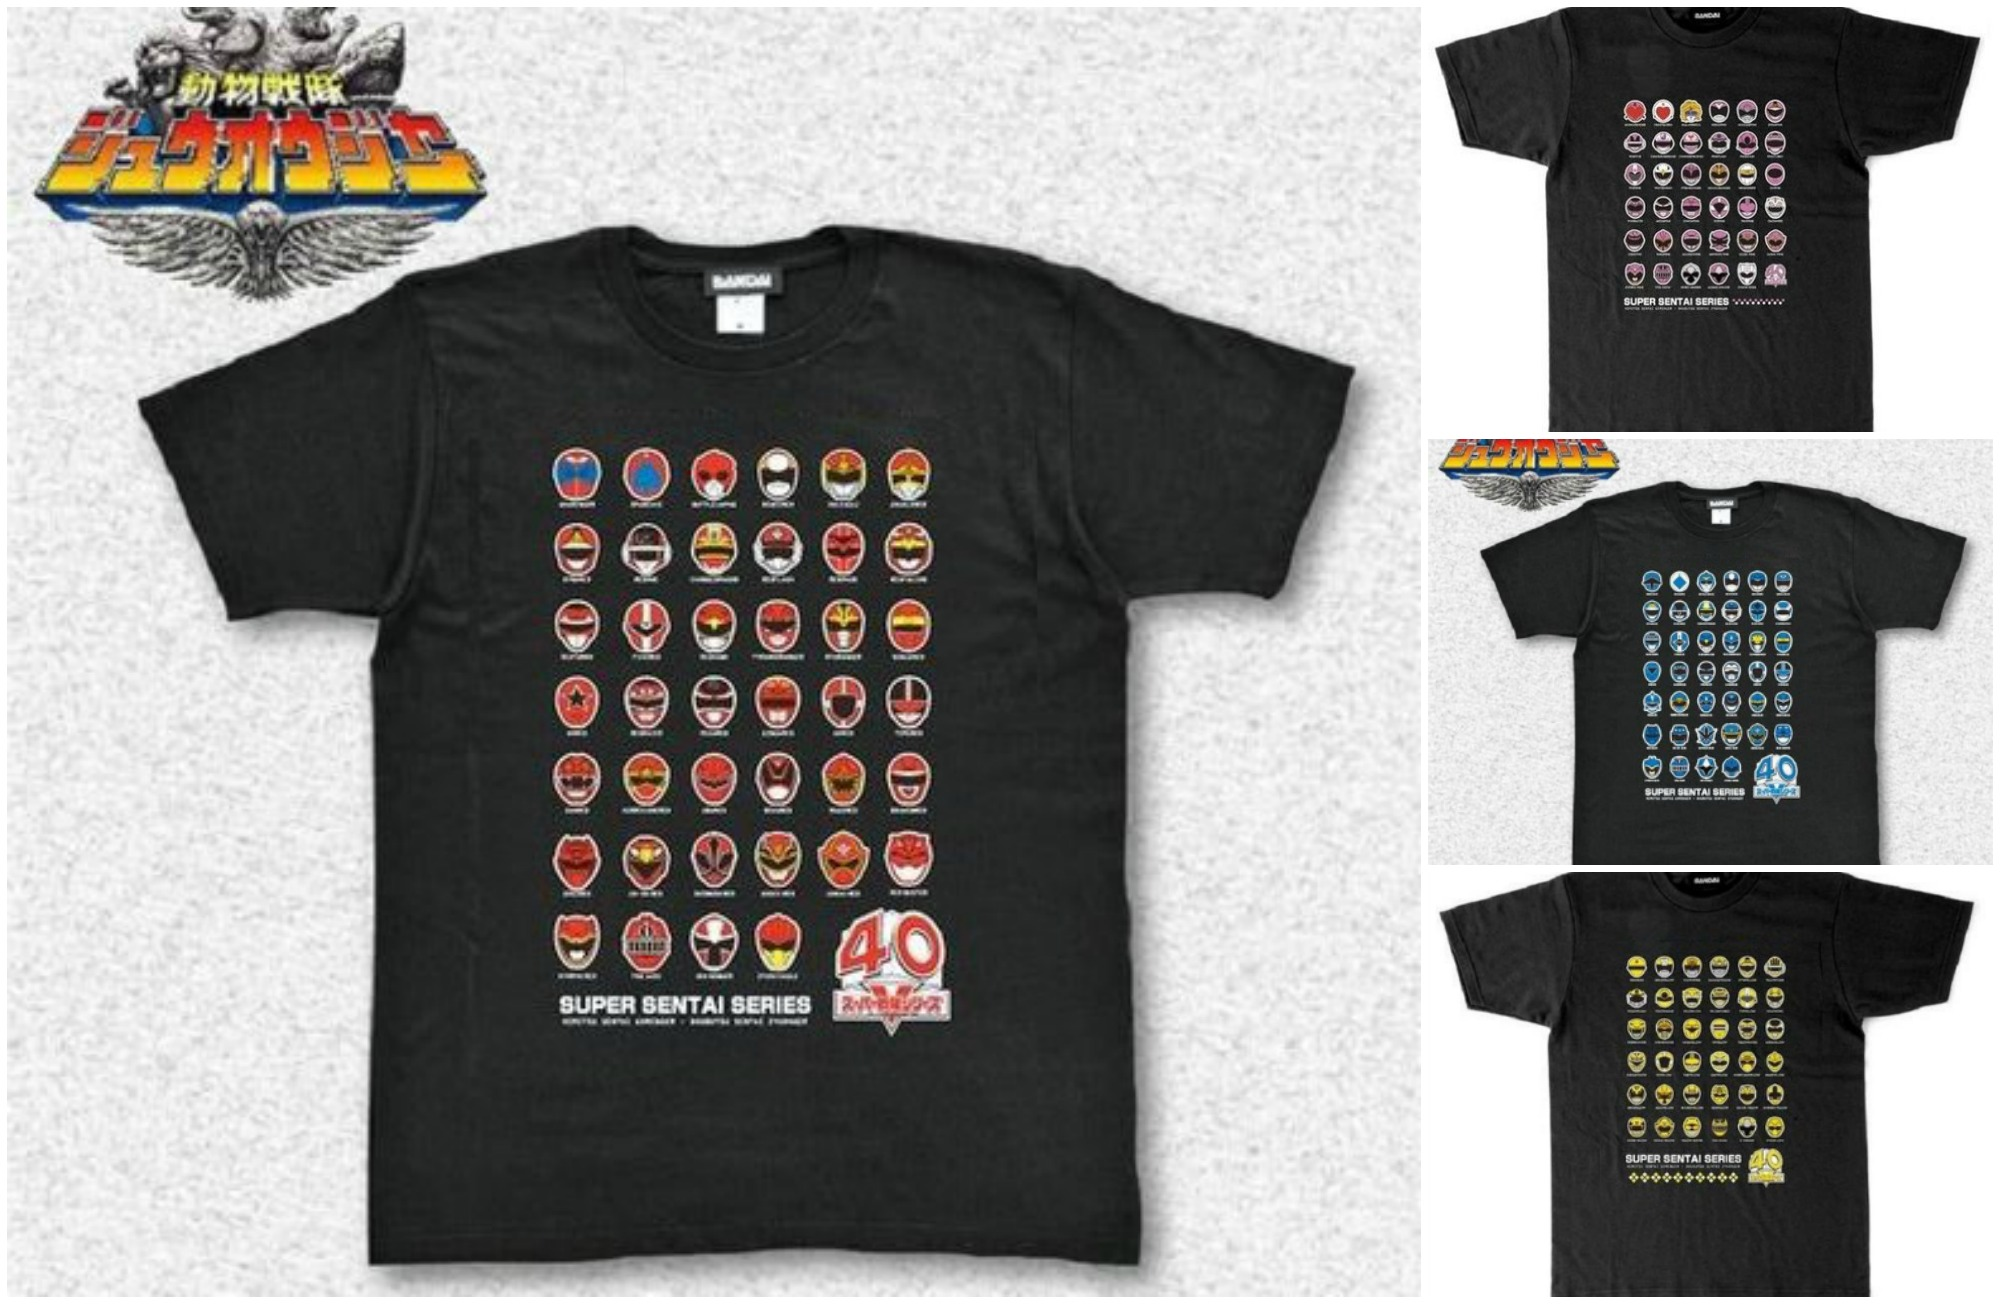 40th Anniversary Hero Shirts Now Available in Larger Sizes